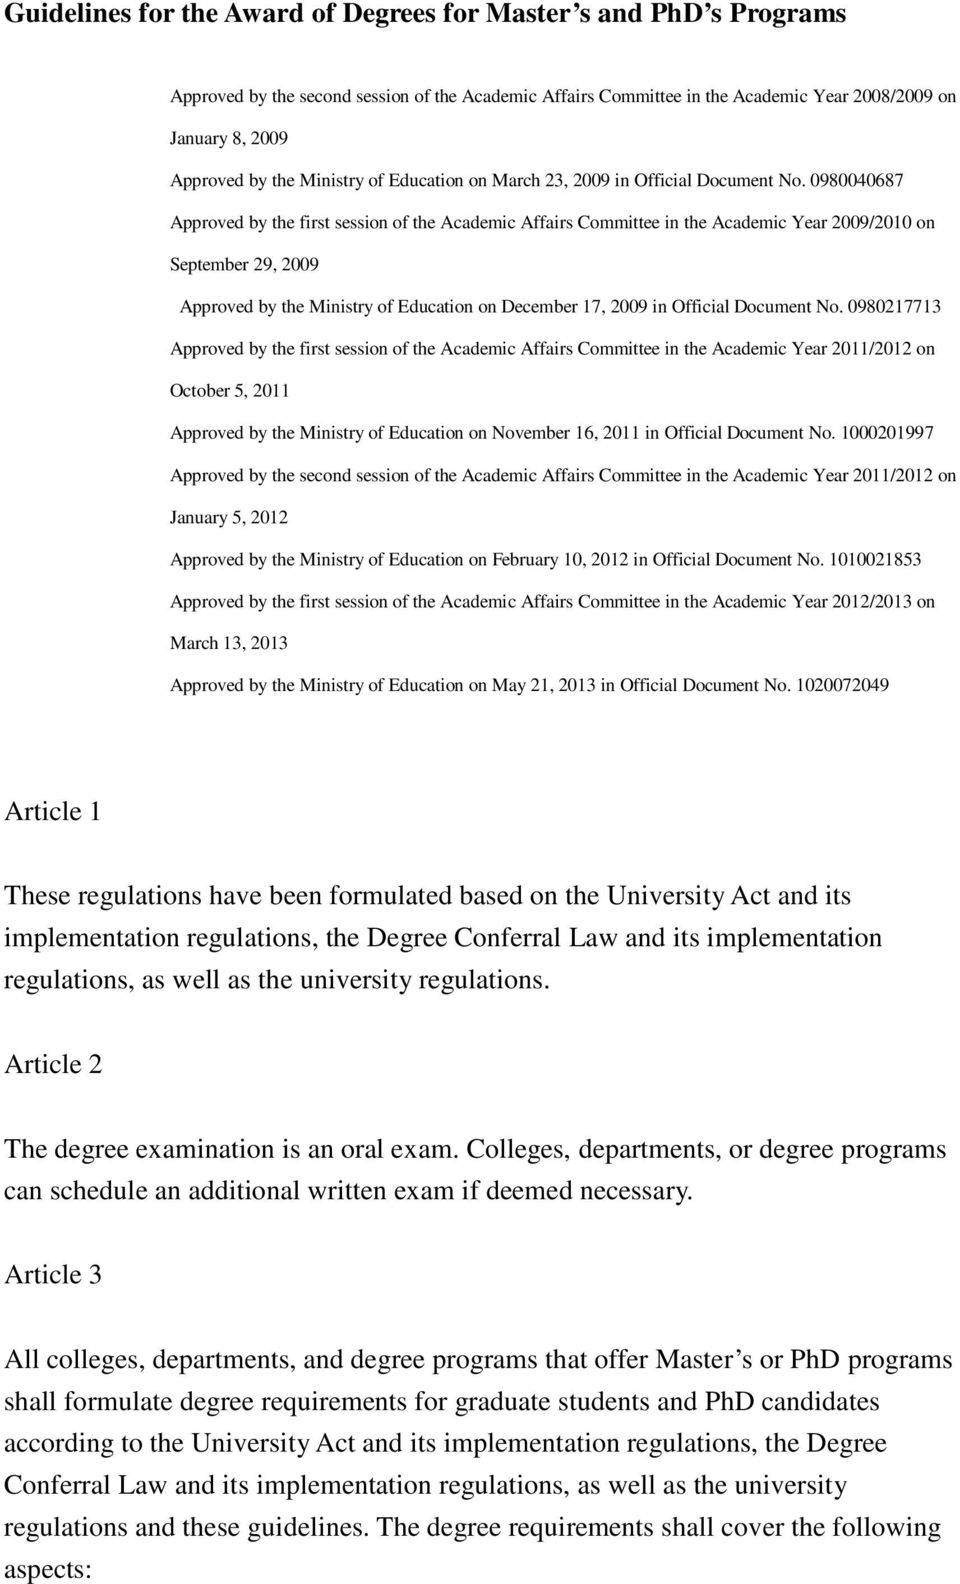 0980040687 Approved by the first session of the Academic Affairs Committee in the Academic Year 2009/2010 on September 29, 2009 Approved by the Ministry of Education on December 17, 2009 in Official